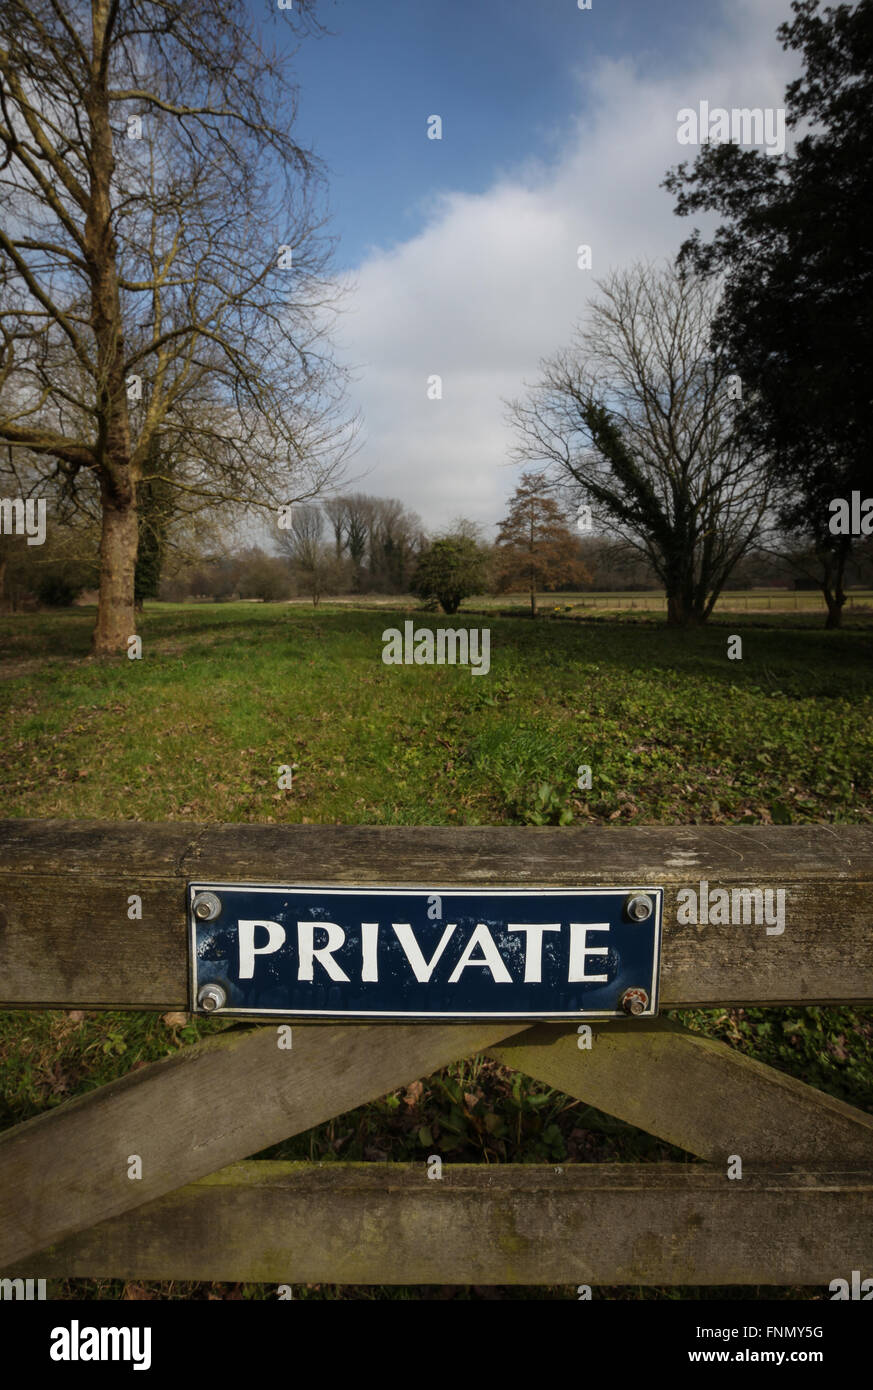 Private sign on a gate in the countryside - Stock Image